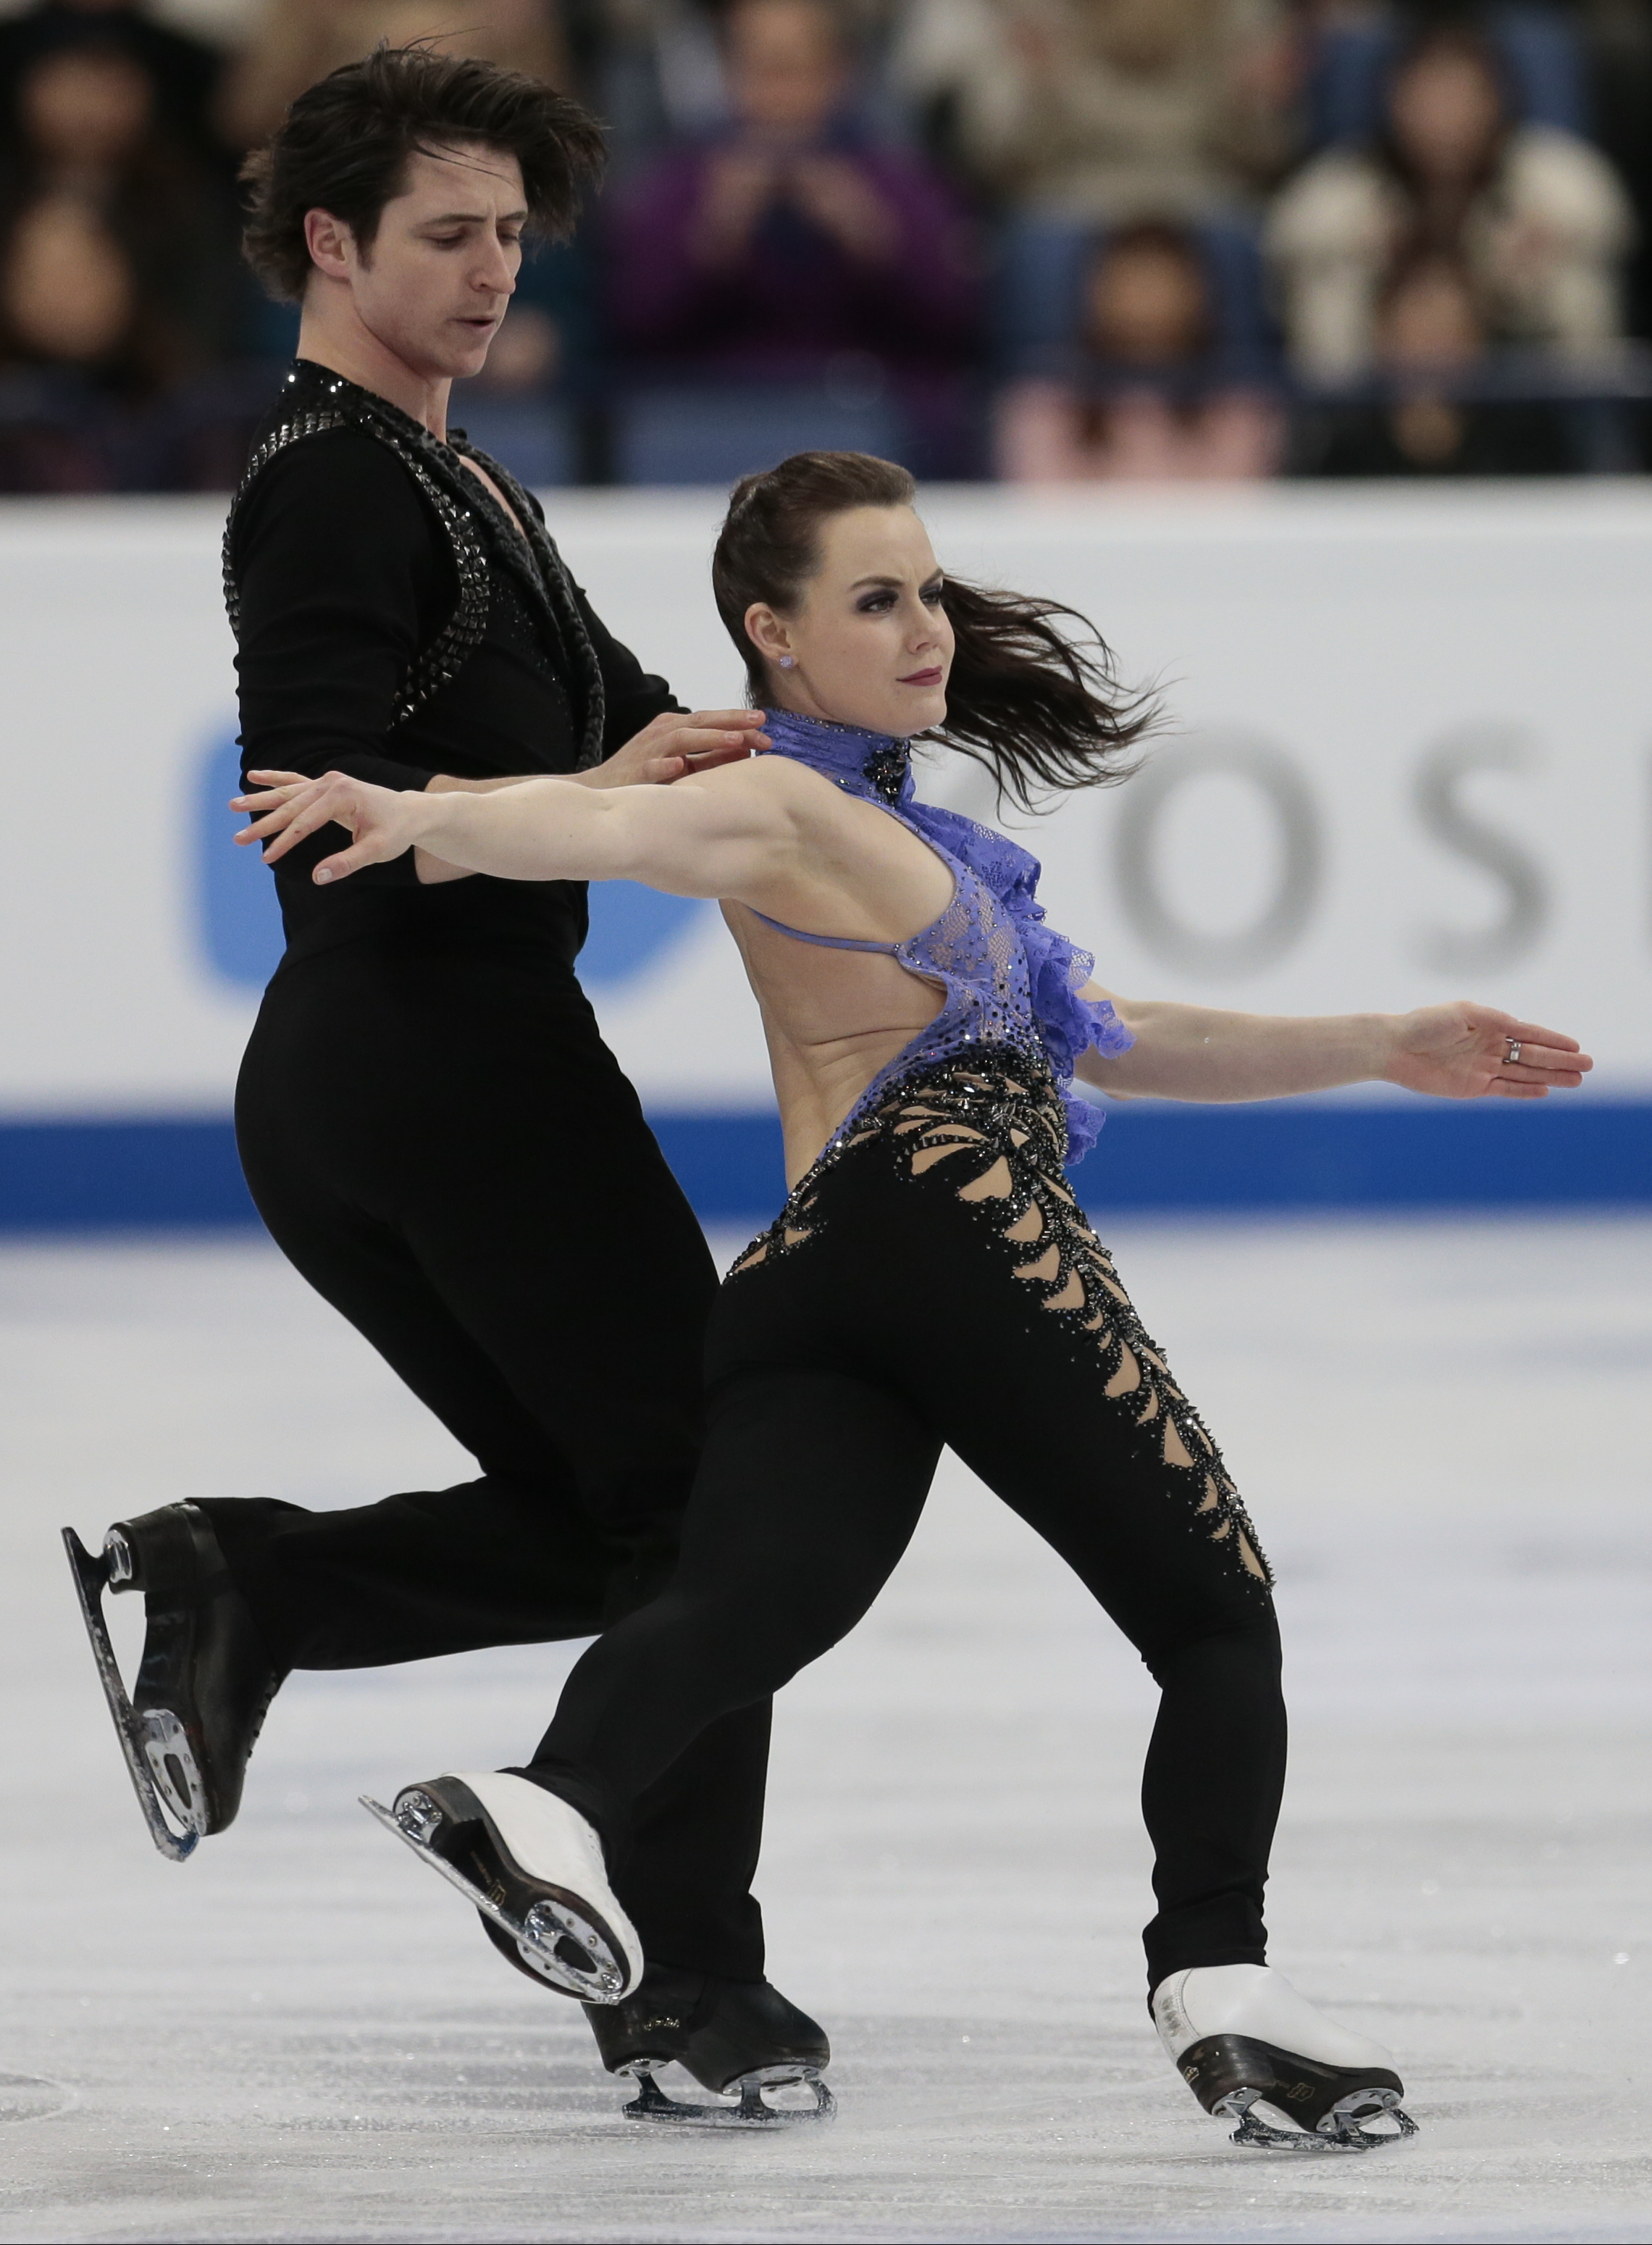 Tessa Virtue and Scott Moir, of Canada, skate their short dance at the World figure skating championships in Helsinki, Finland, on Friday, March 31, 2017. (AP Photo/Ivan Sekretarev)